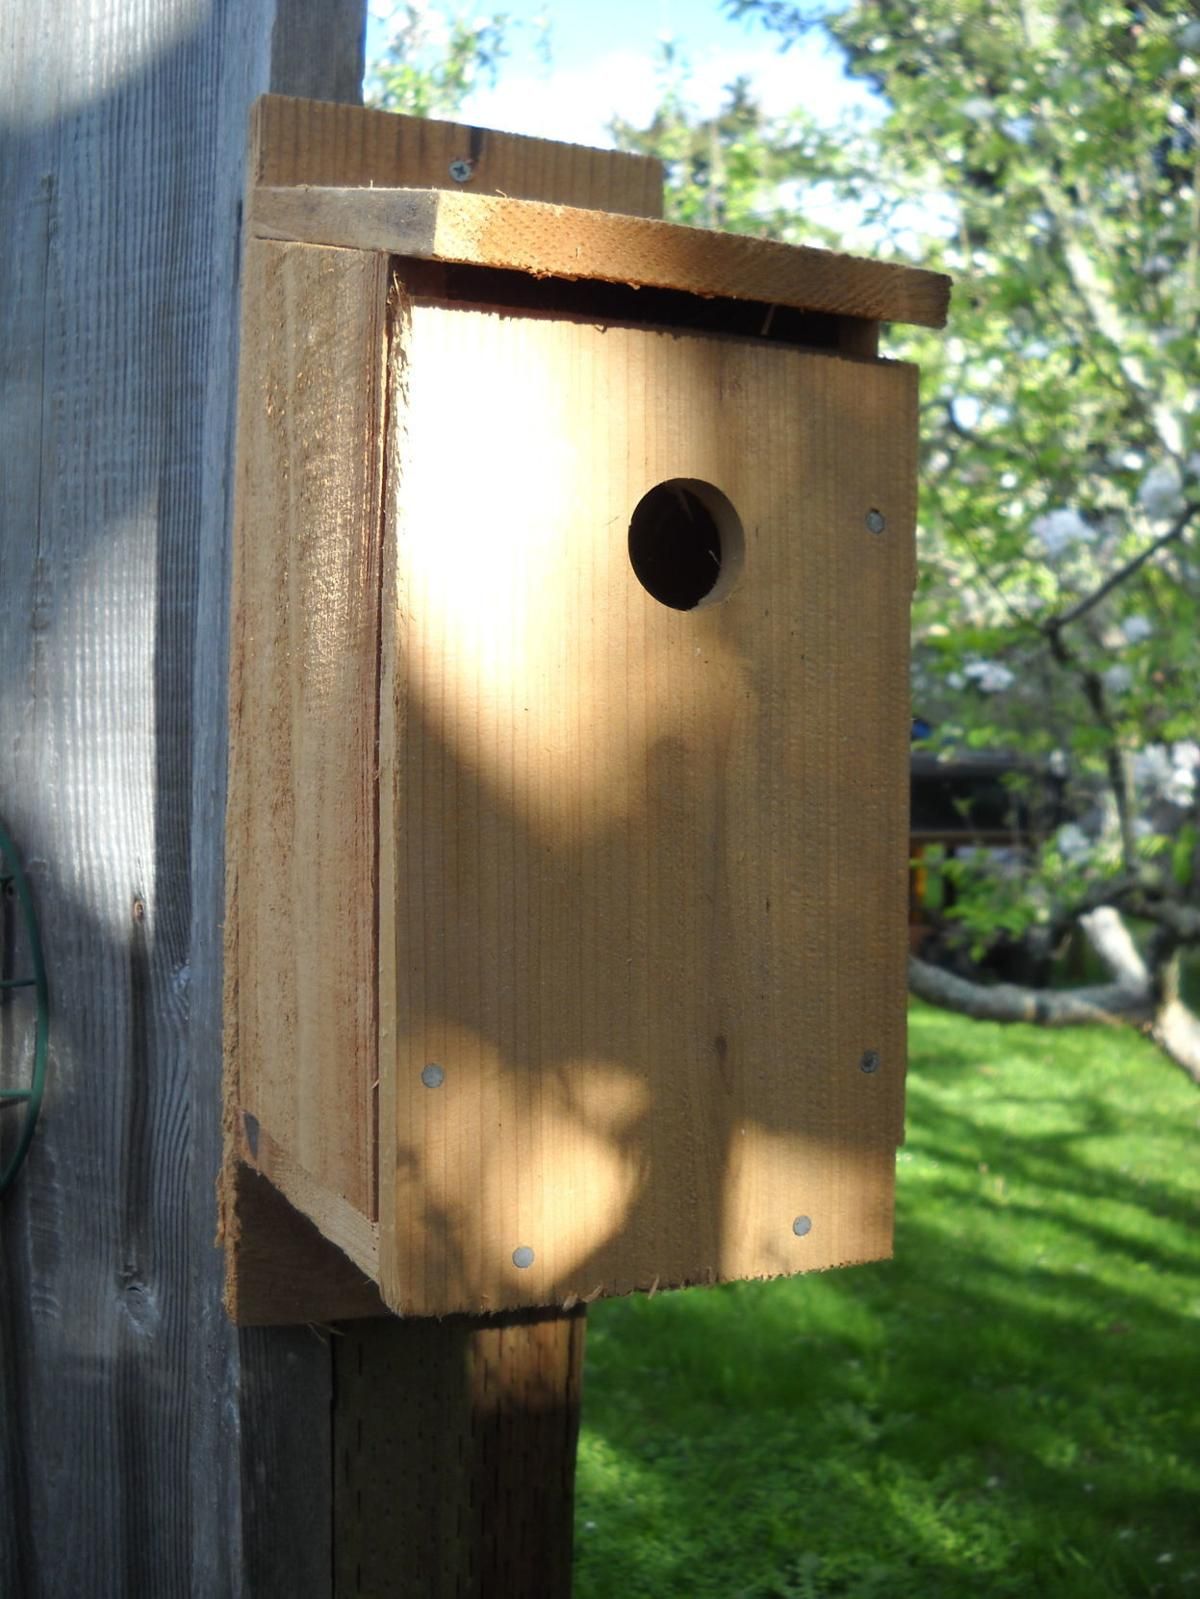 Build a bird house at museum